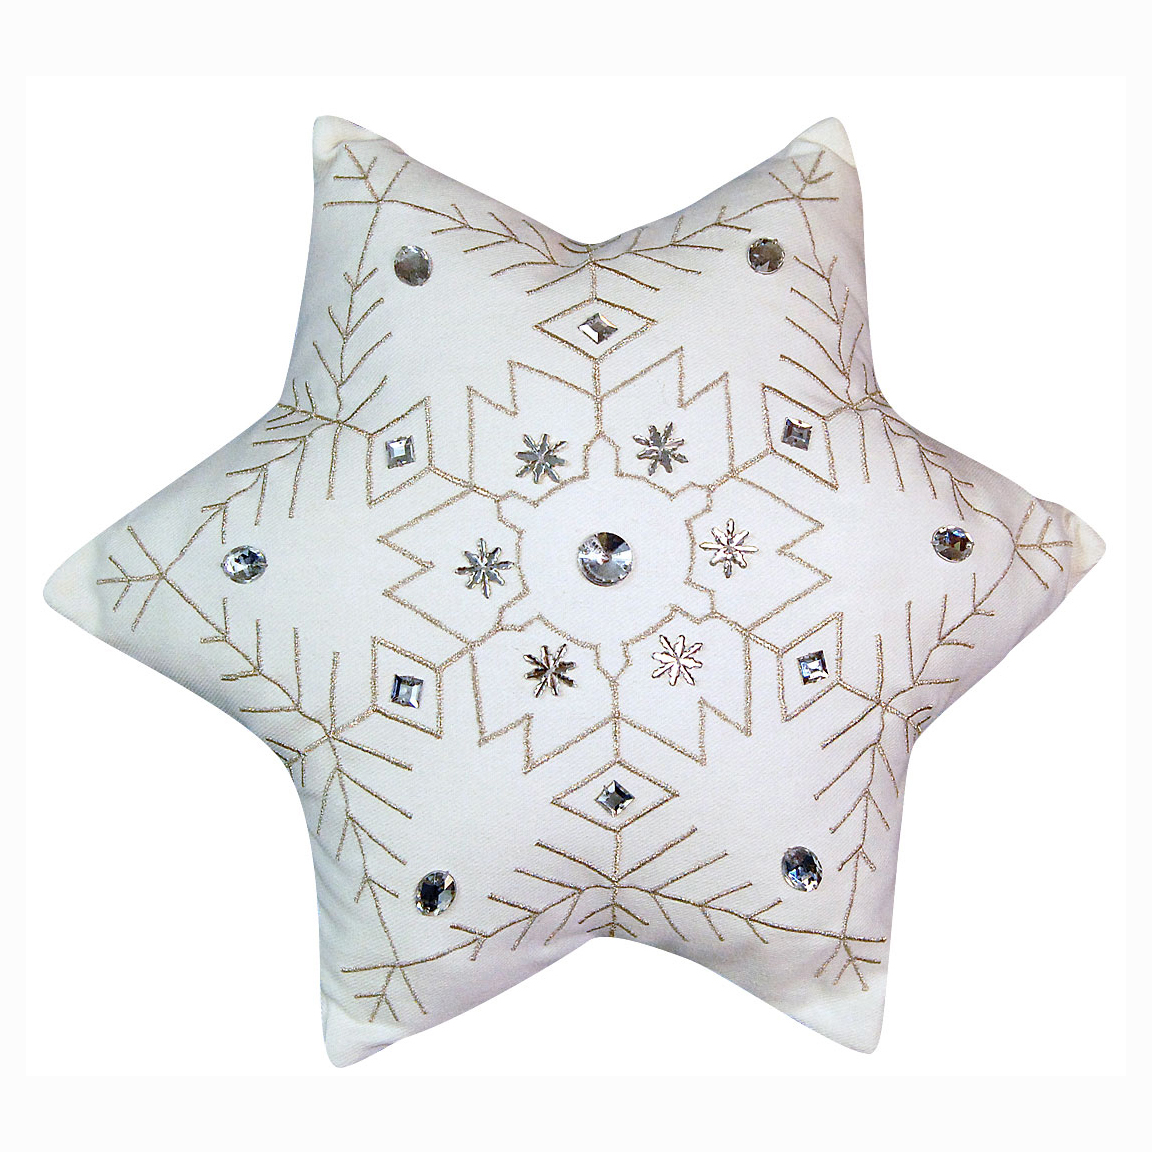 Snowflake Shaped Indoor Pillow Small 6 Points Rightside Design Studio